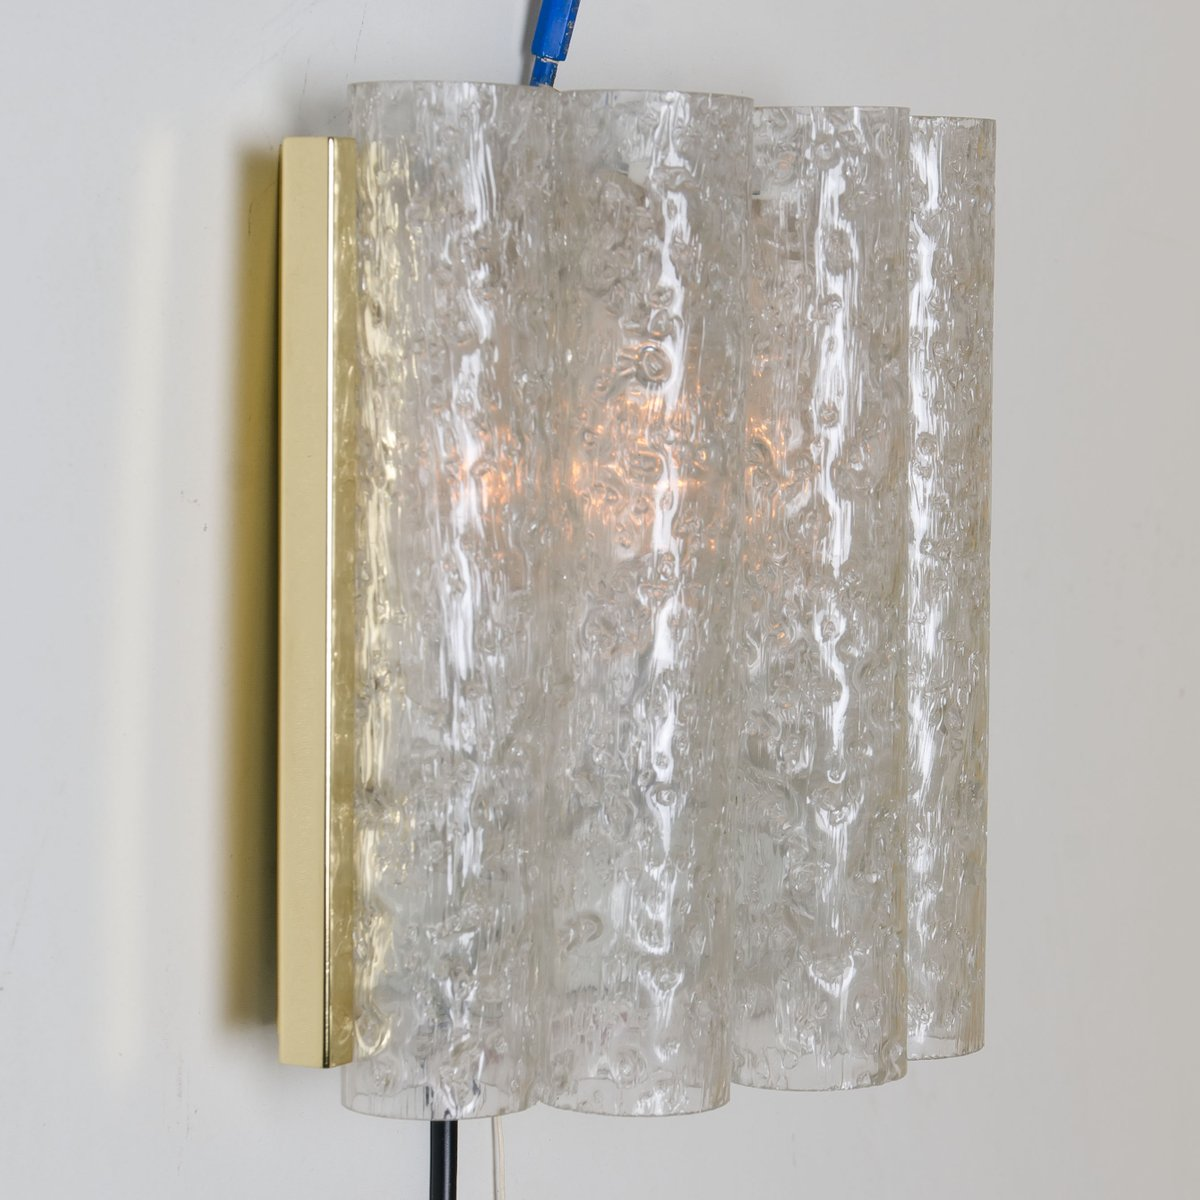 Wall Lamps Brass : Brass and Glass Wall Lamps from Doria, 1970s, Set of 2 for sale at Pamono